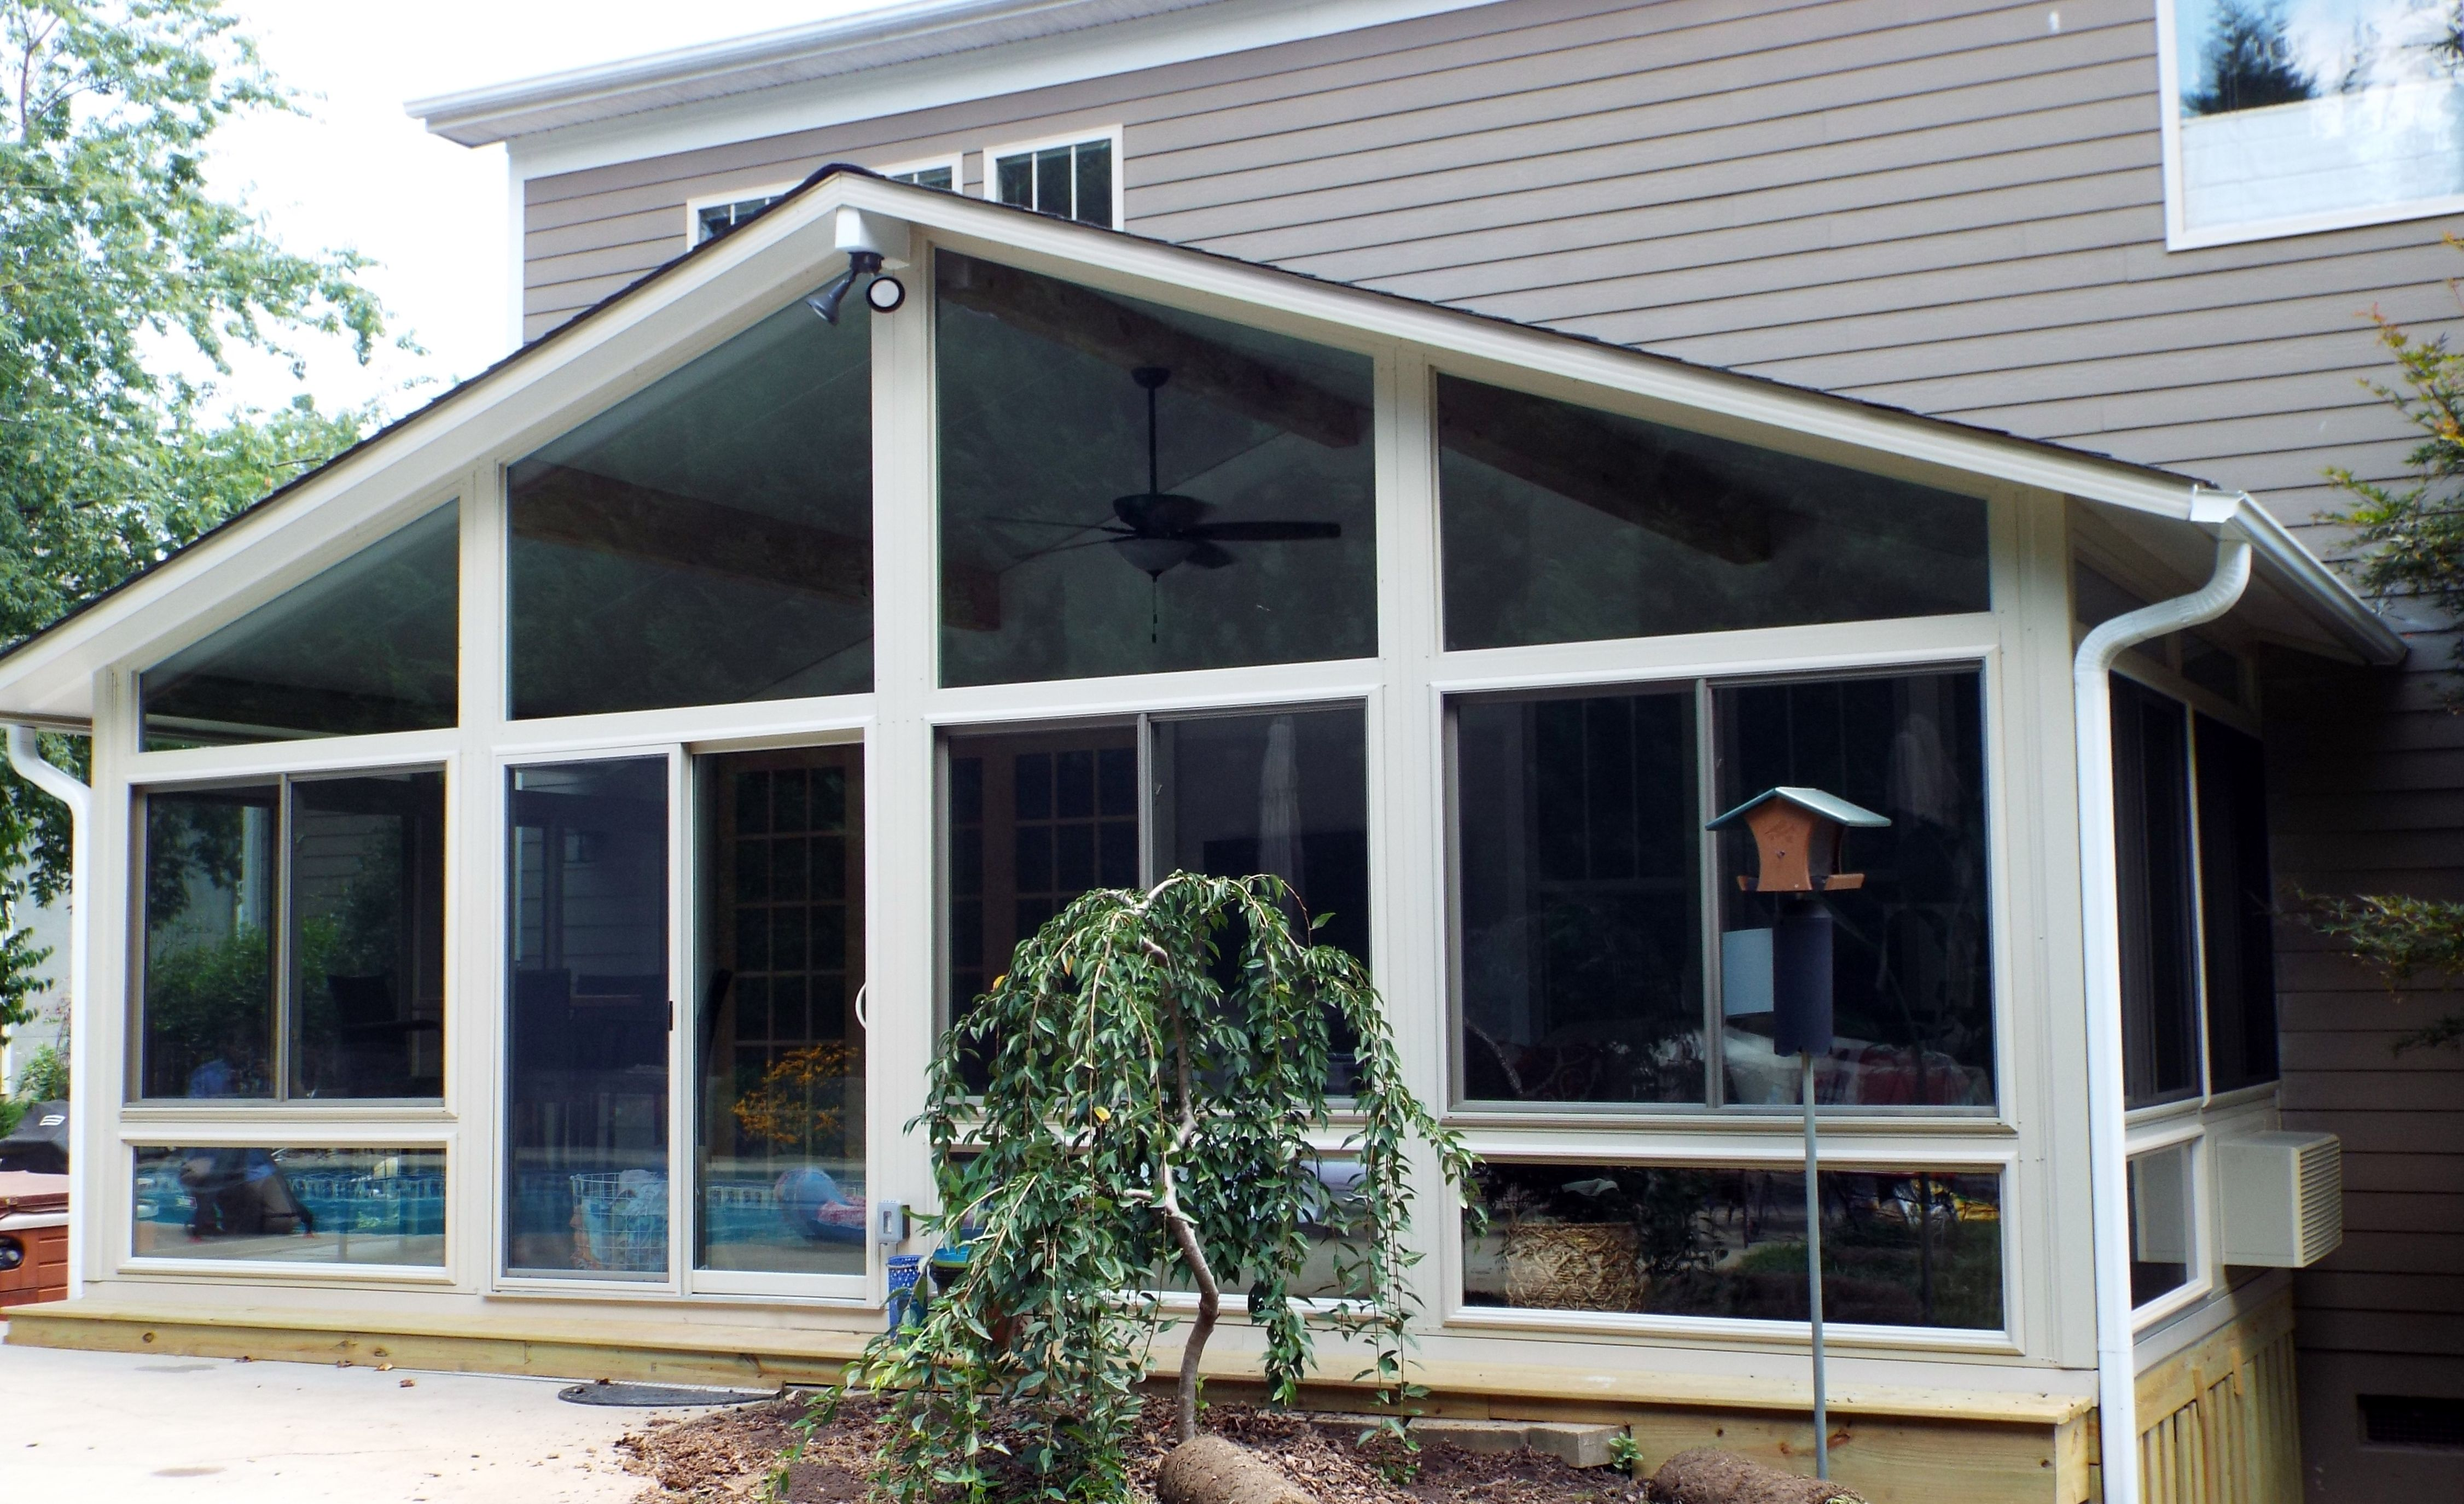 This Amazing Gable Roof All Season Sunroom In Biltmore Lake Nc Overlooks A Pool And Hot Tub Sunroom Backyard Design Porch Enclosures